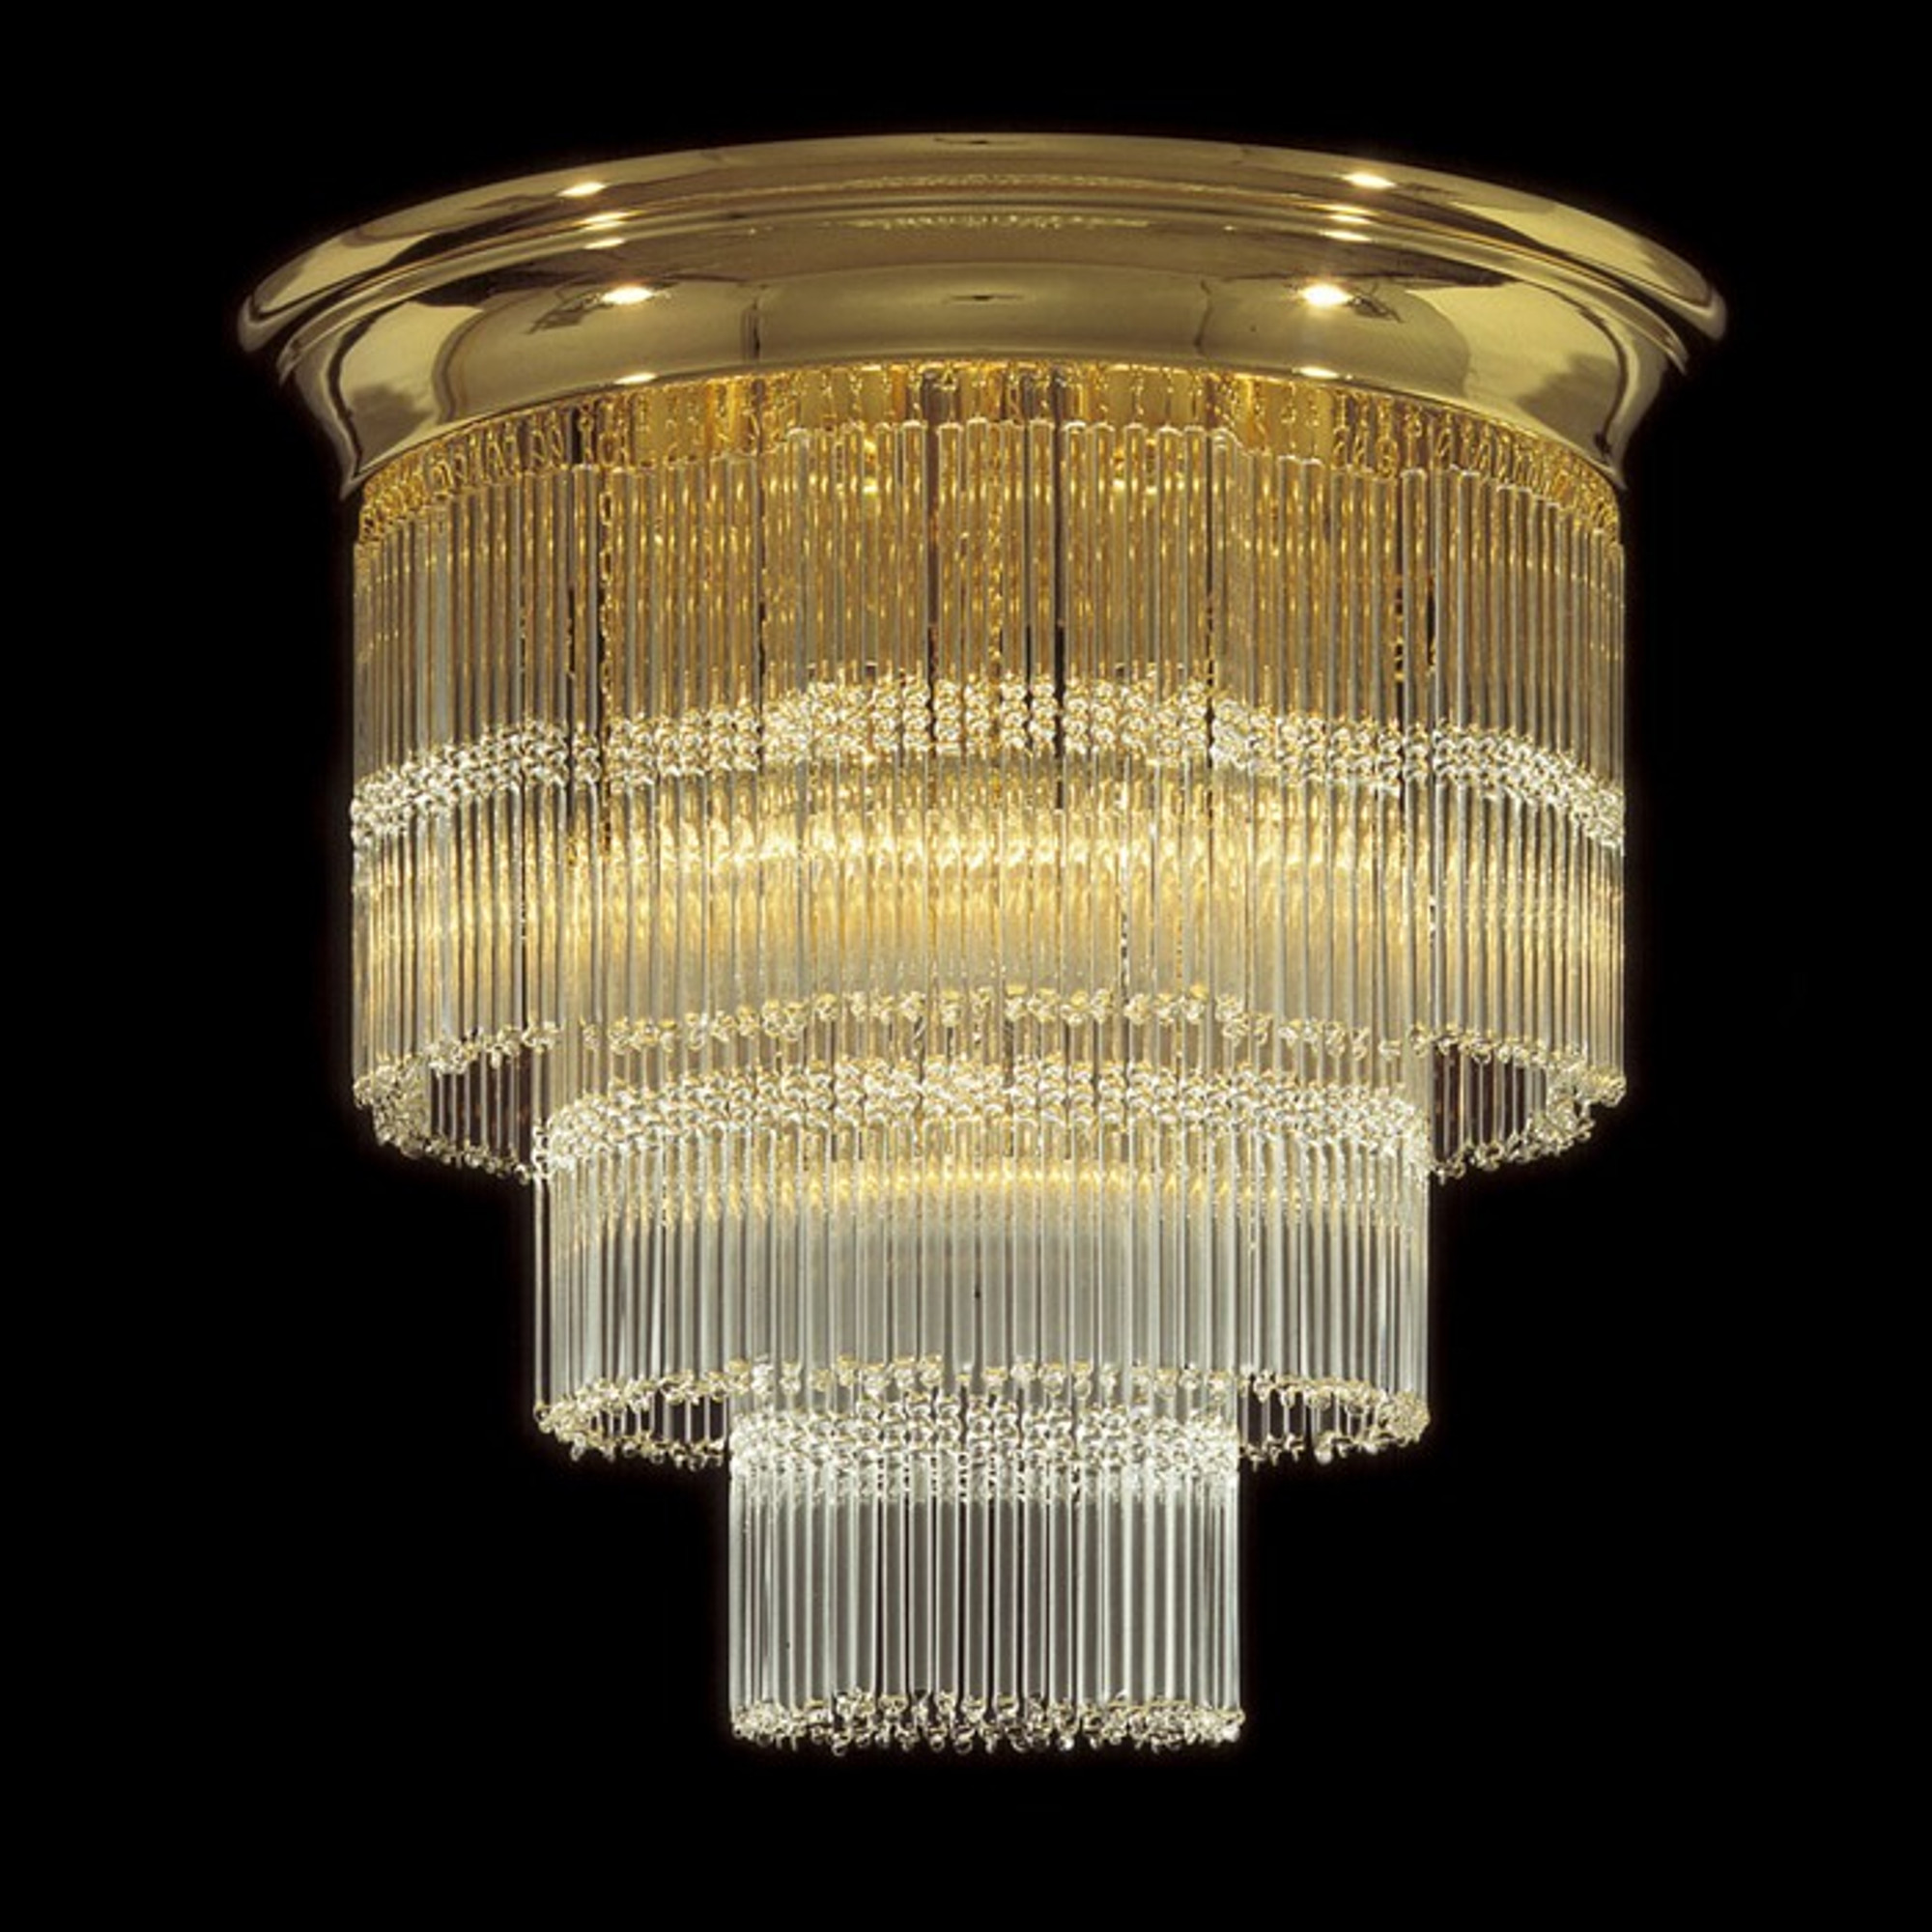 Art Deco Deckenleuchte Ceiling Light Kolarz Art Deco C450.17/42 | Pinlight.eu